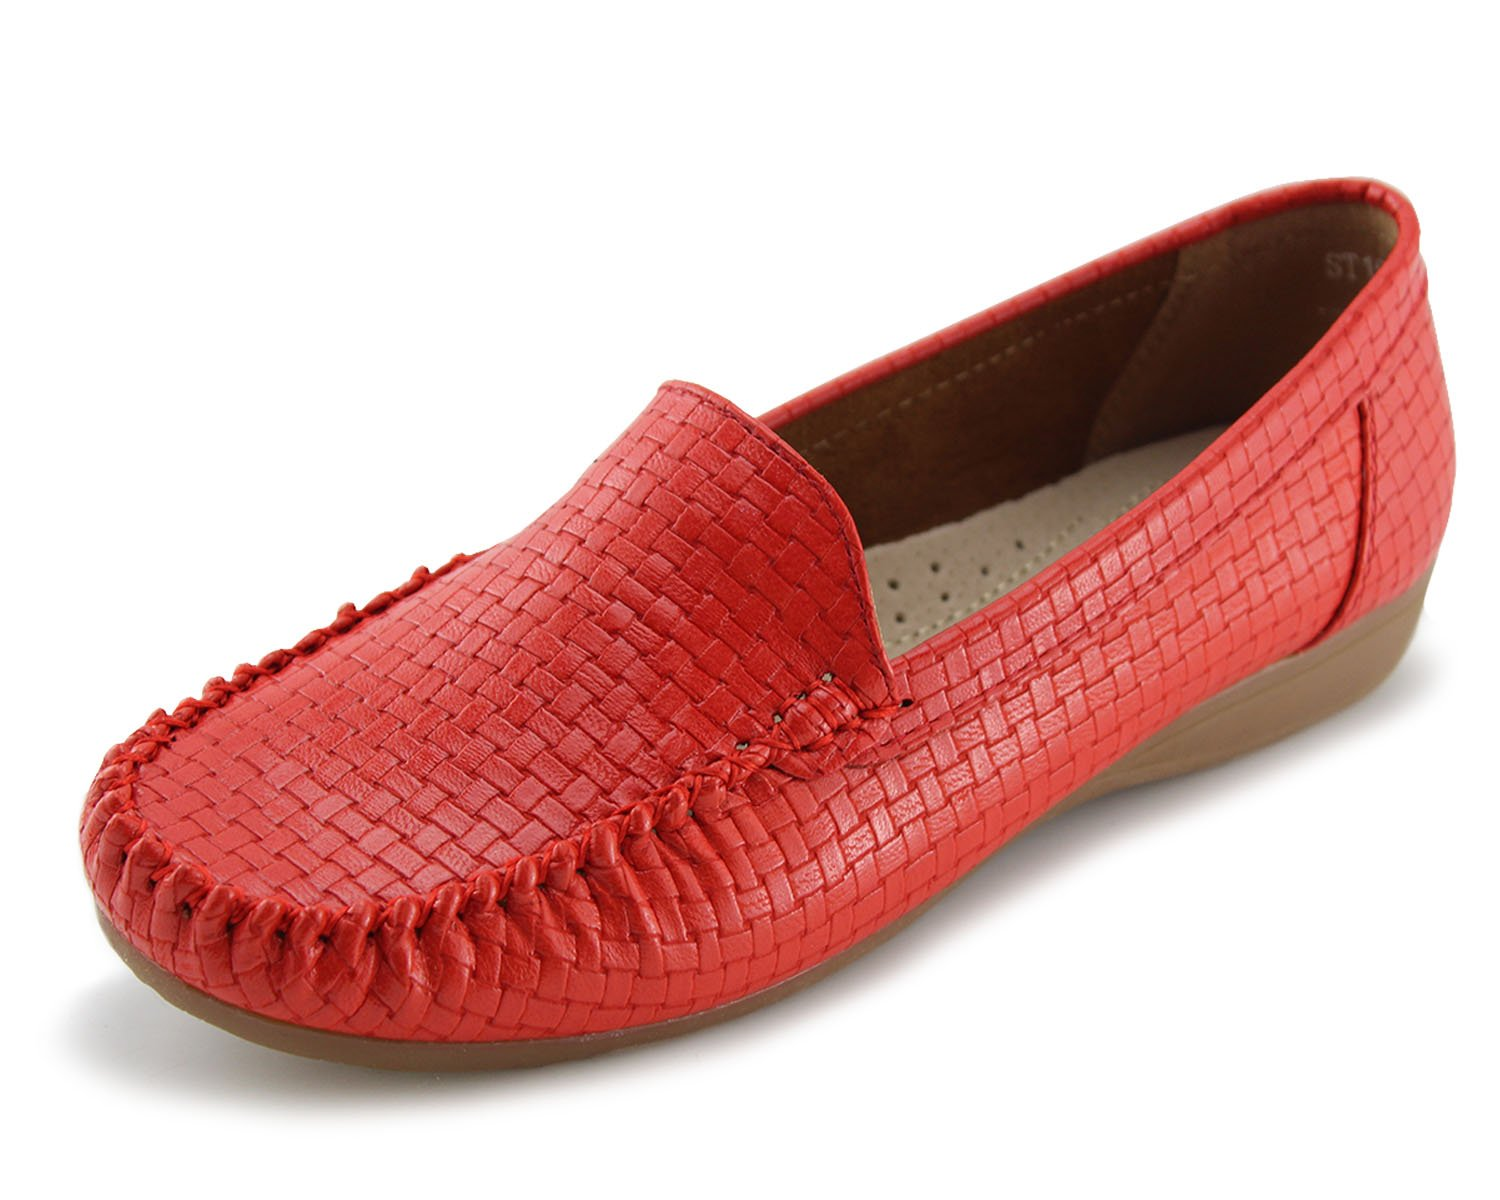 Jabasic Women's Slip-on Loafers Flat Casual Driving Shoes (10 B(M) US, Red)